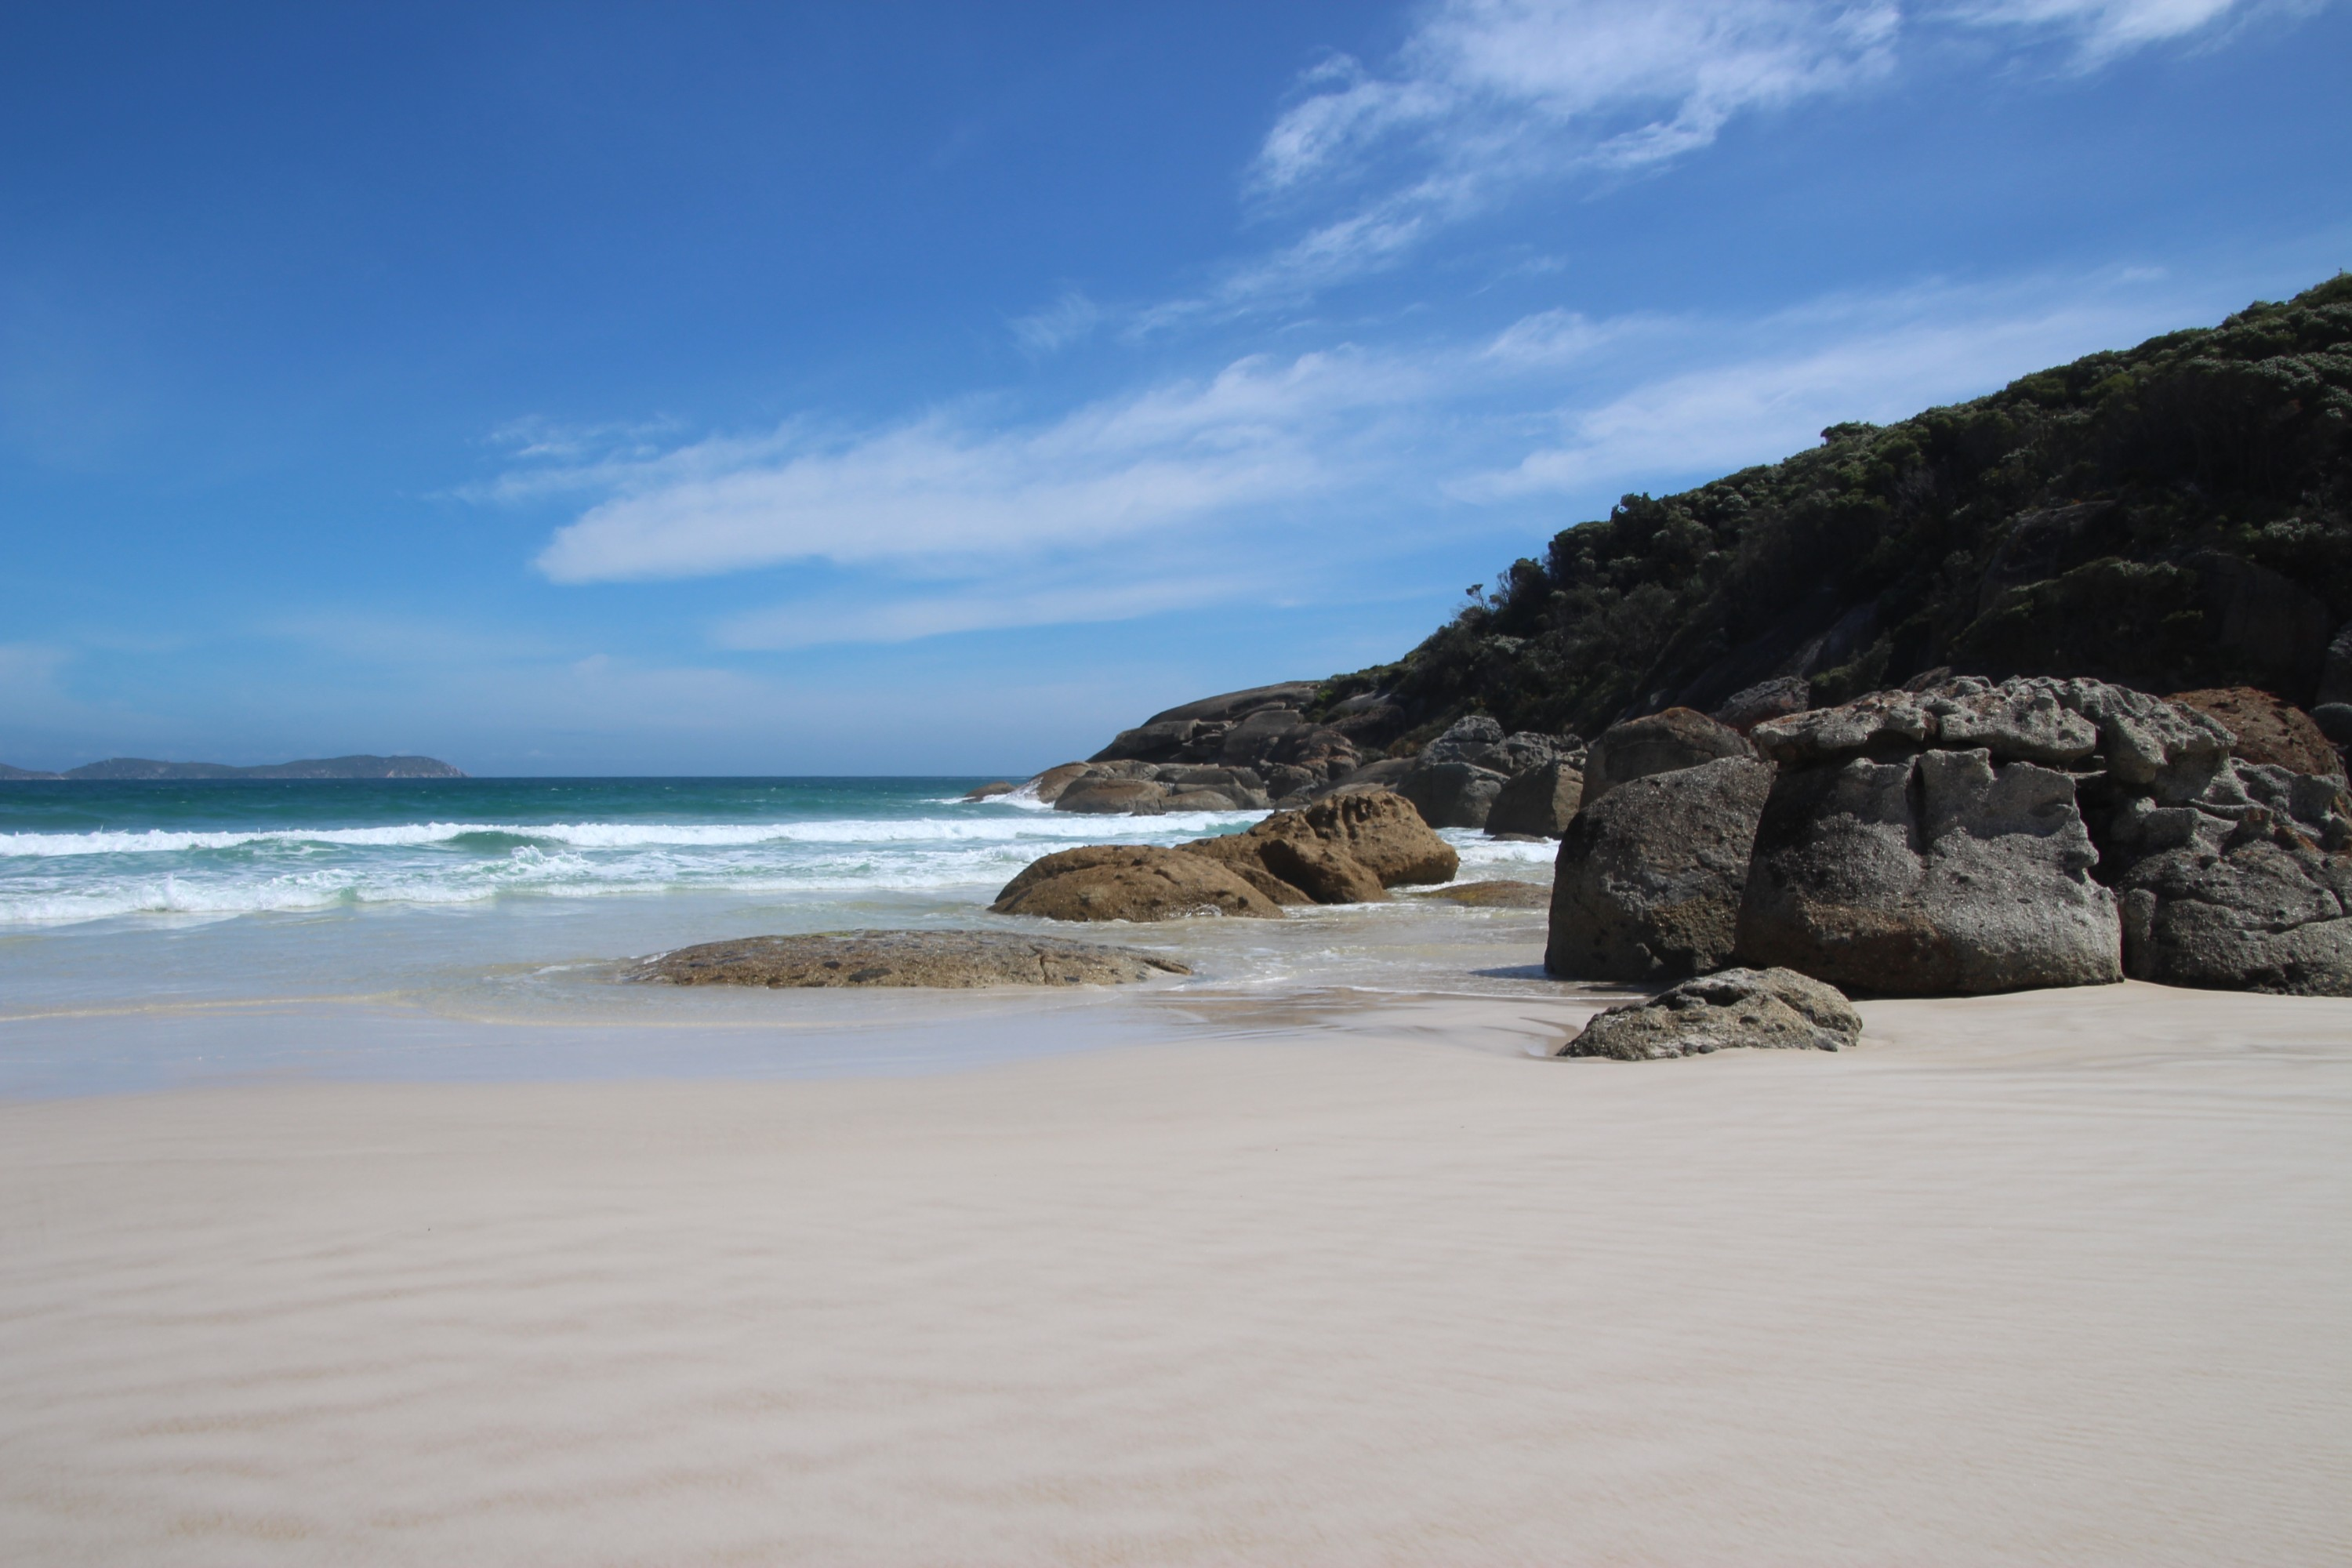 Wilsons Promontory NP